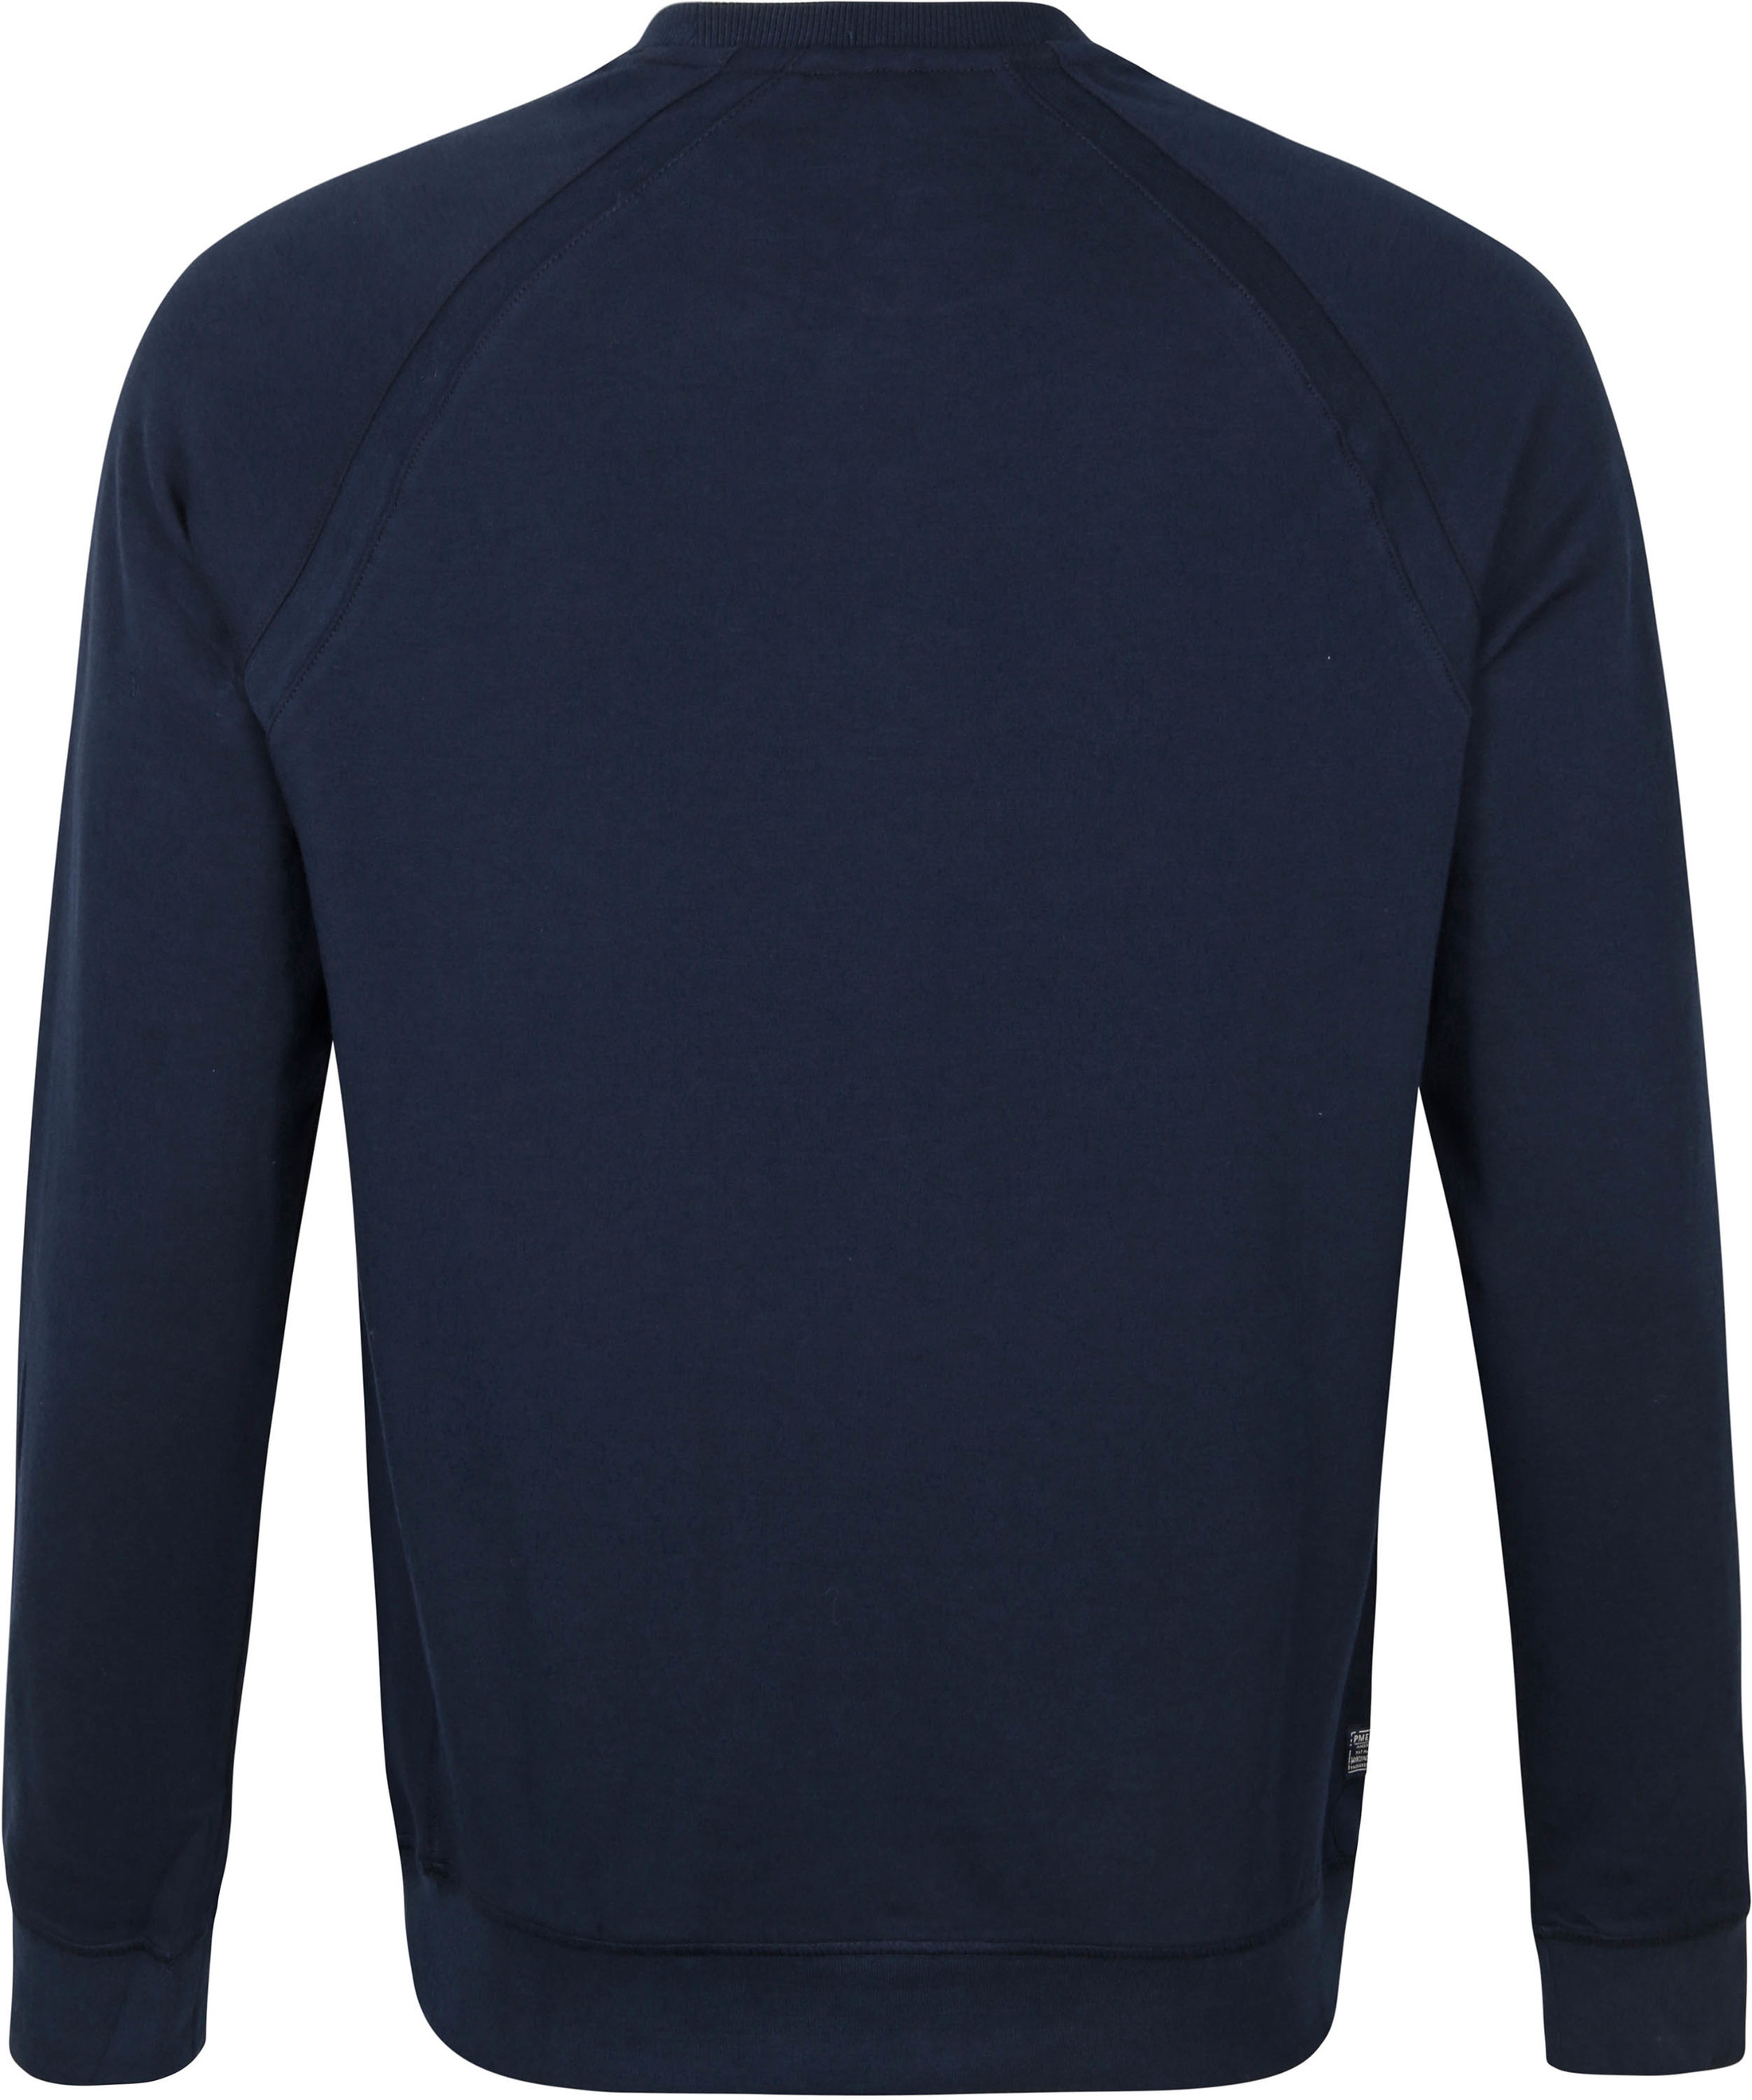 PME Legend Trui Interlock Donkerblauw